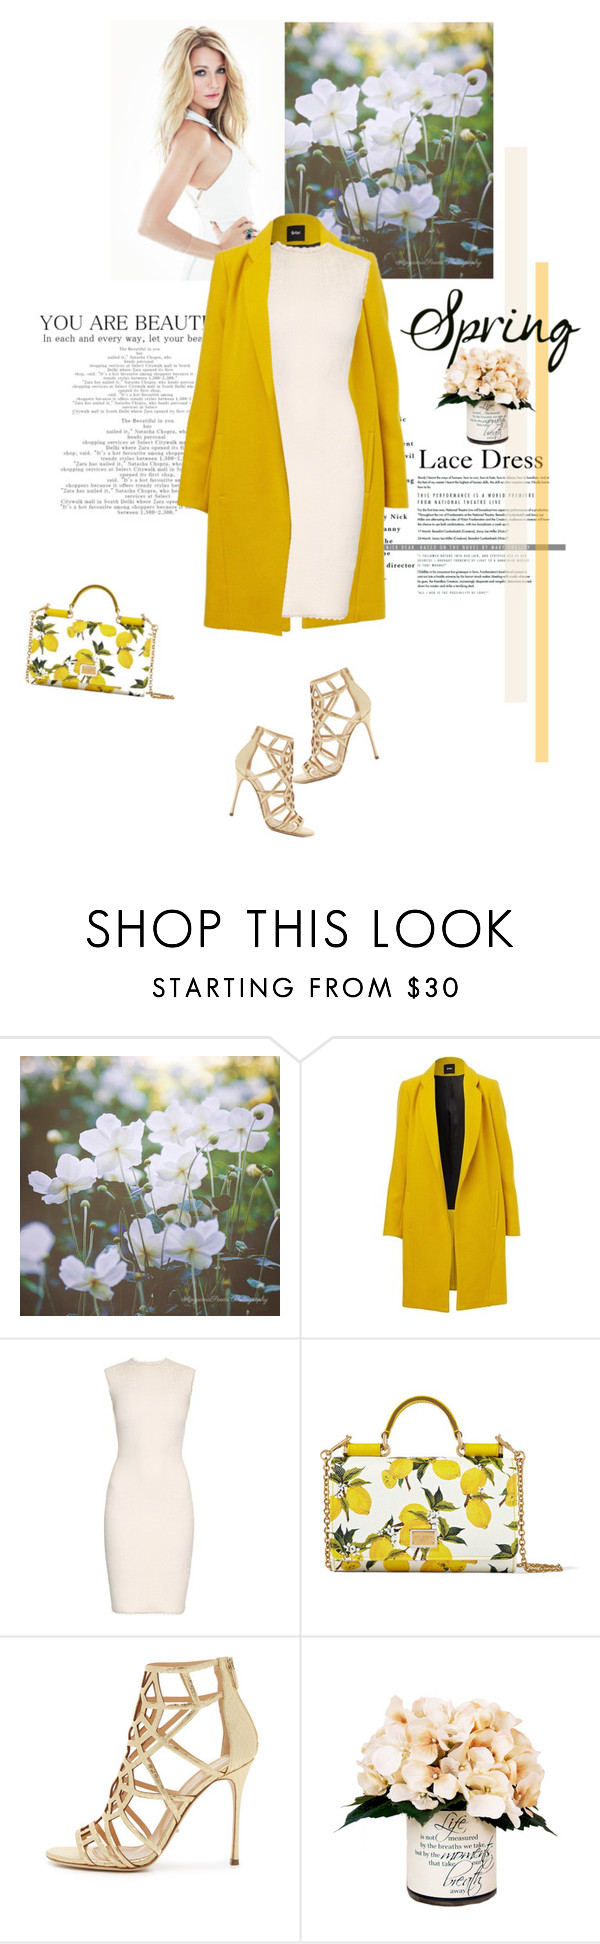 """""""Lovely Lace Dress"""" by mycherryblossom on Polyvore featuring Alexander McQueen, Dolce&Gabbana, Sergio Rossi and Creative Displays"""